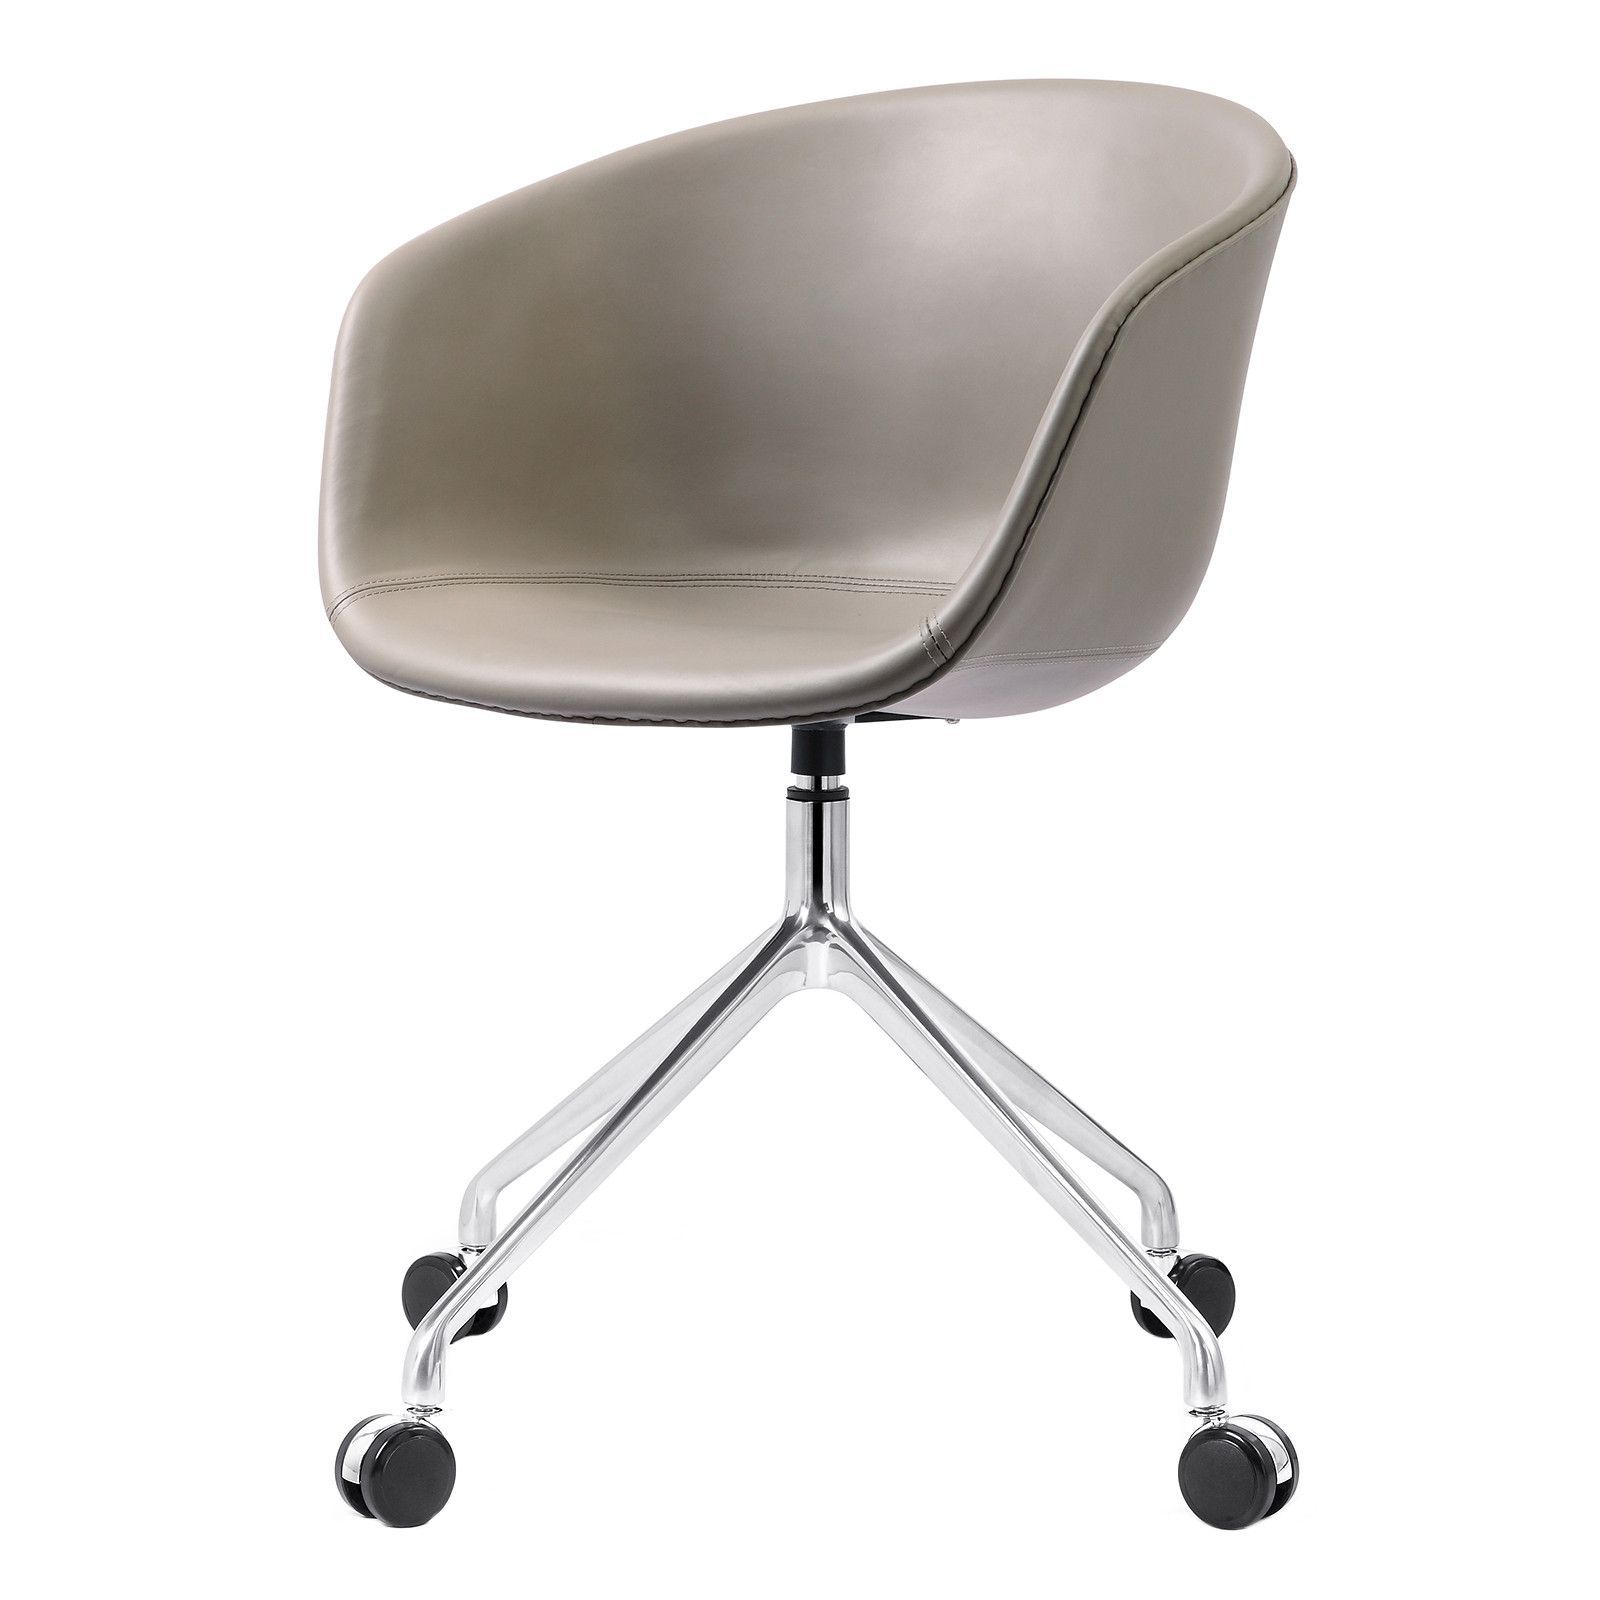 M26 Scandinavian Office Chair